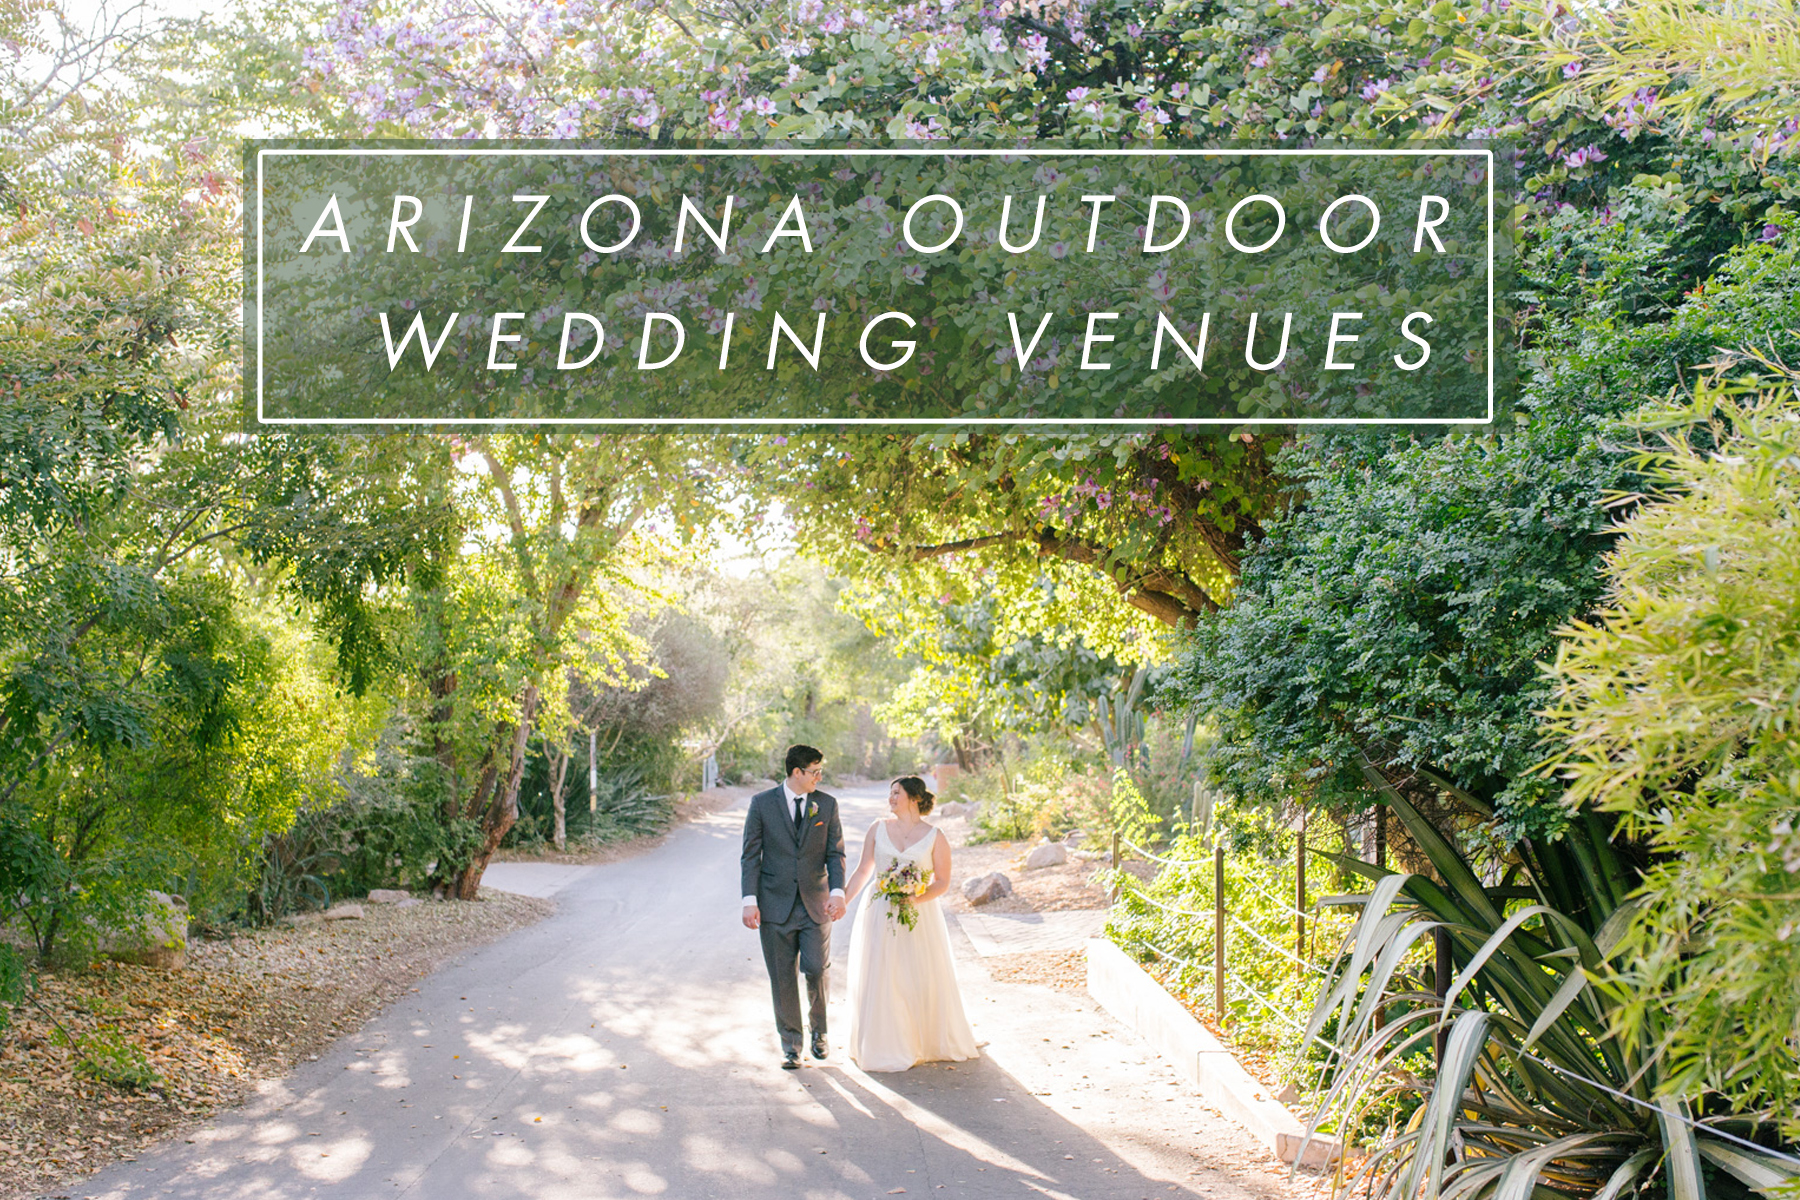 Outdoor Natural Wedding Venues In Phoenix Arizona Tips For Brides